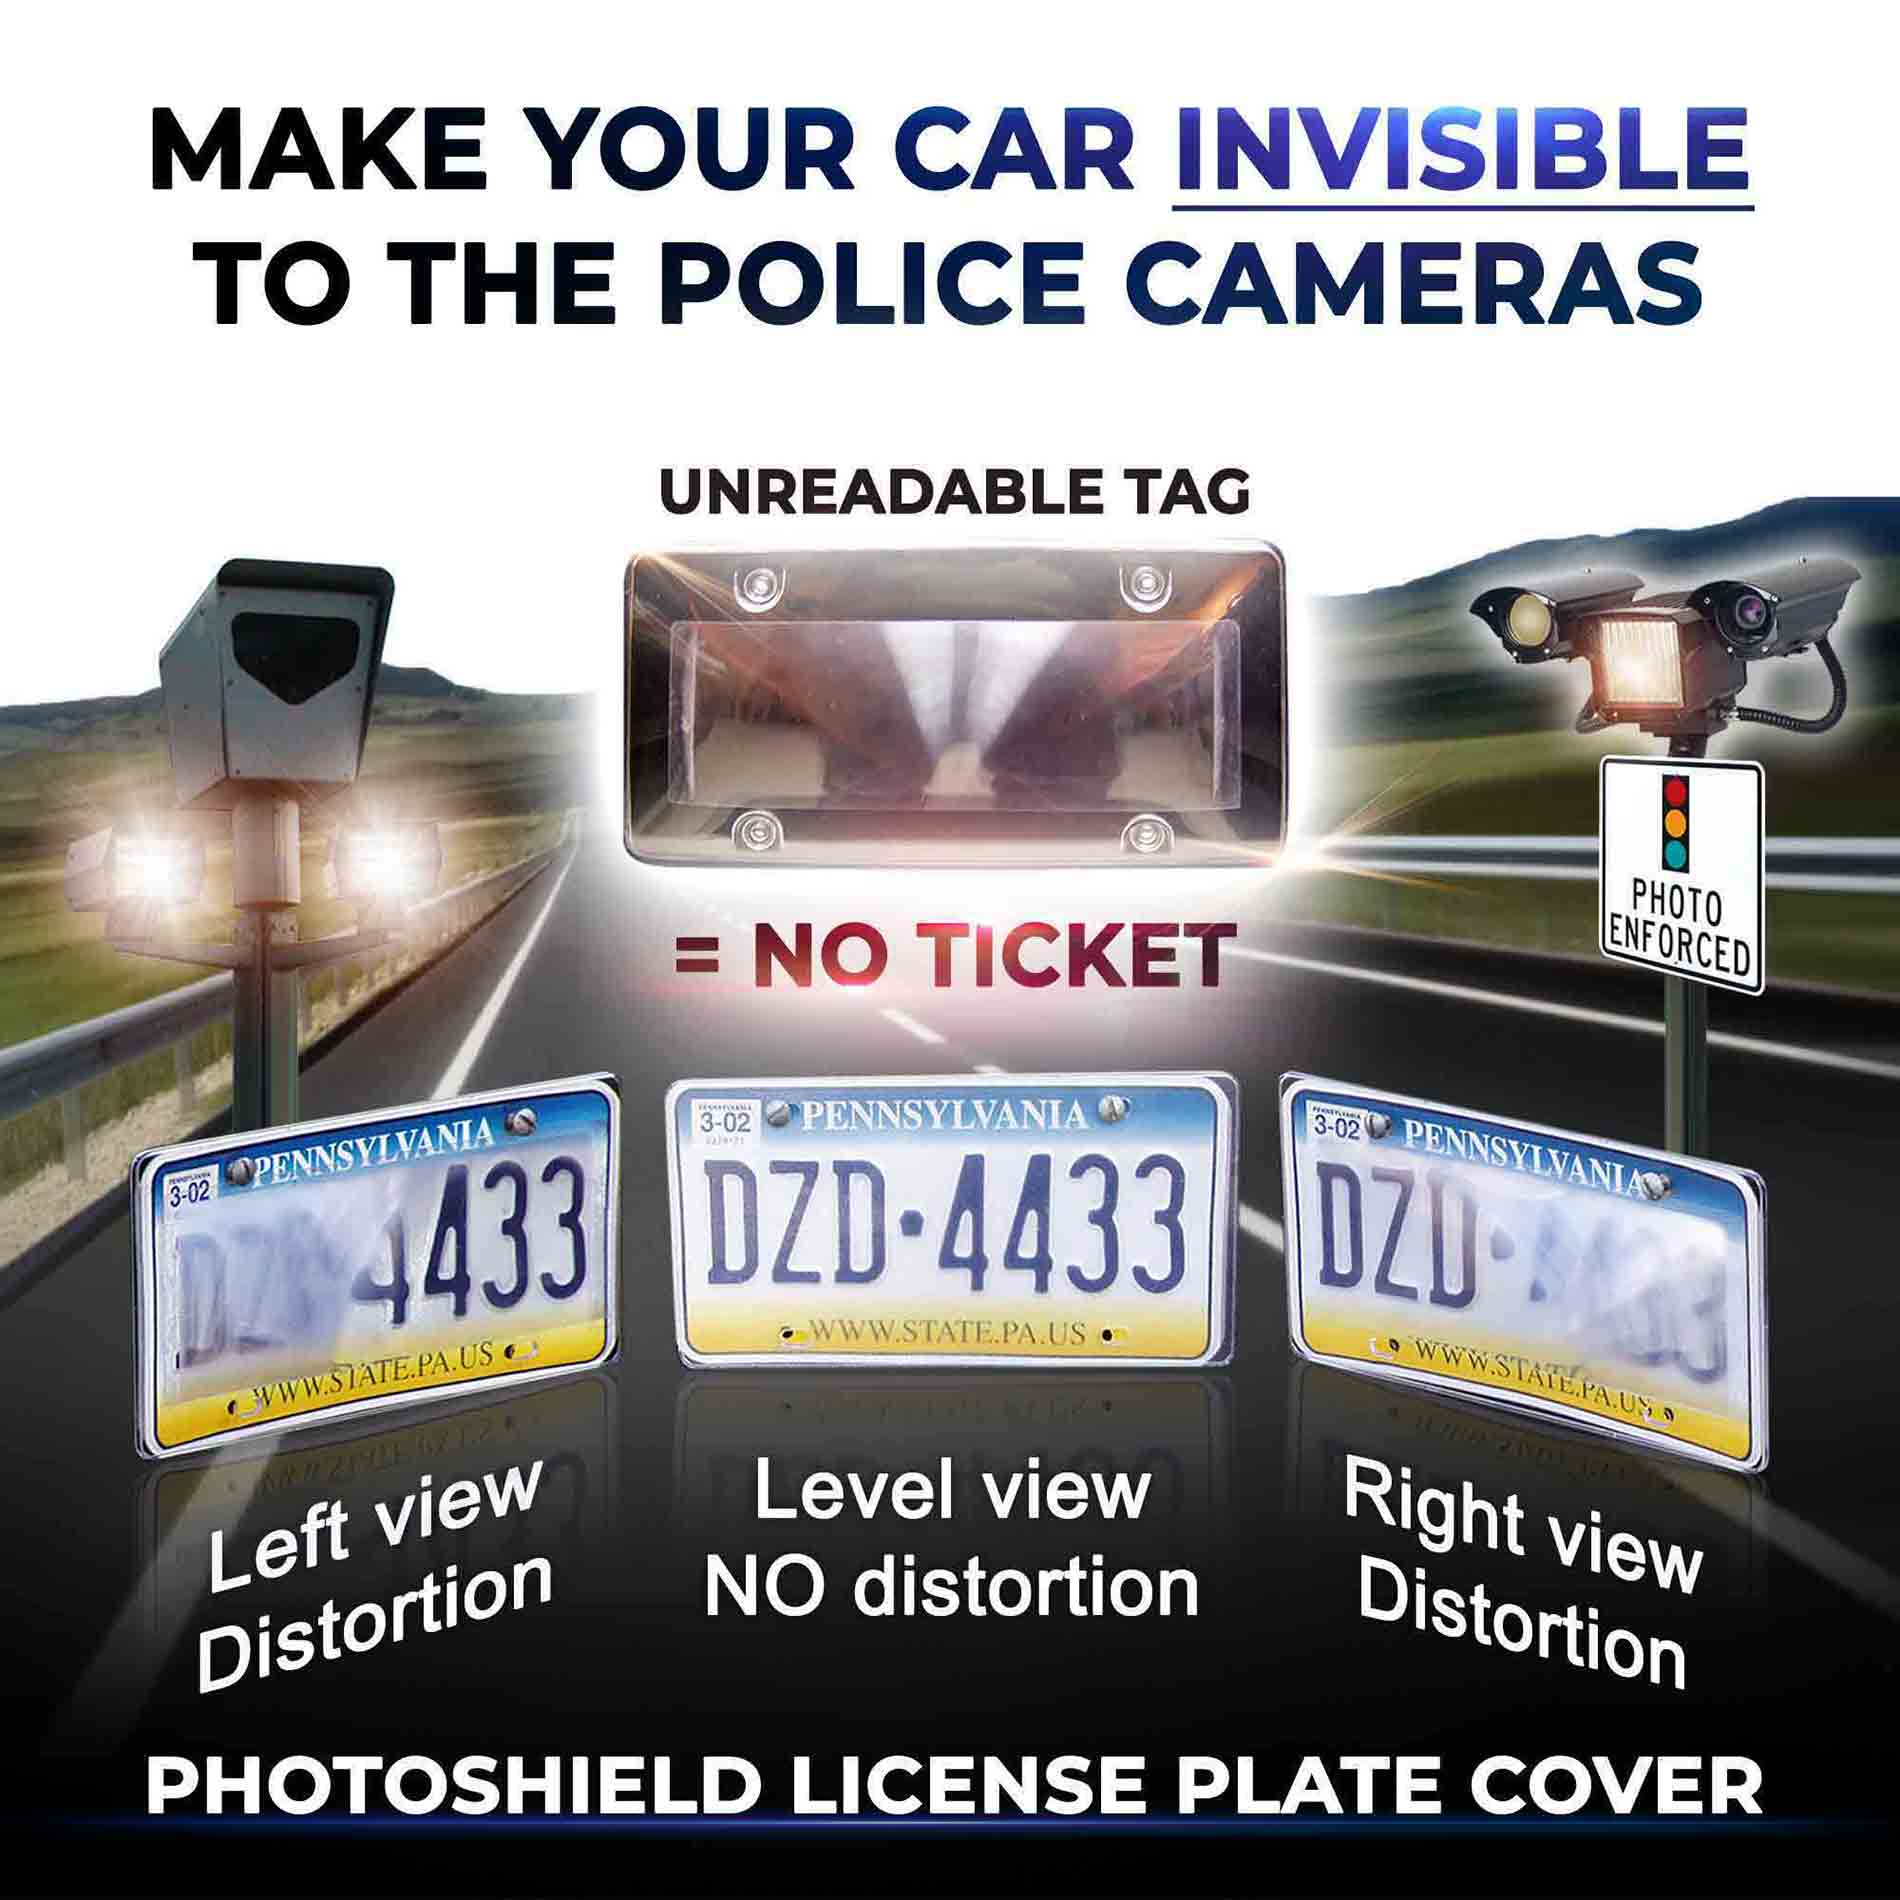 PhotoShield License Plate Cover Anti Speed Camera Cover Tapaffiliate v2